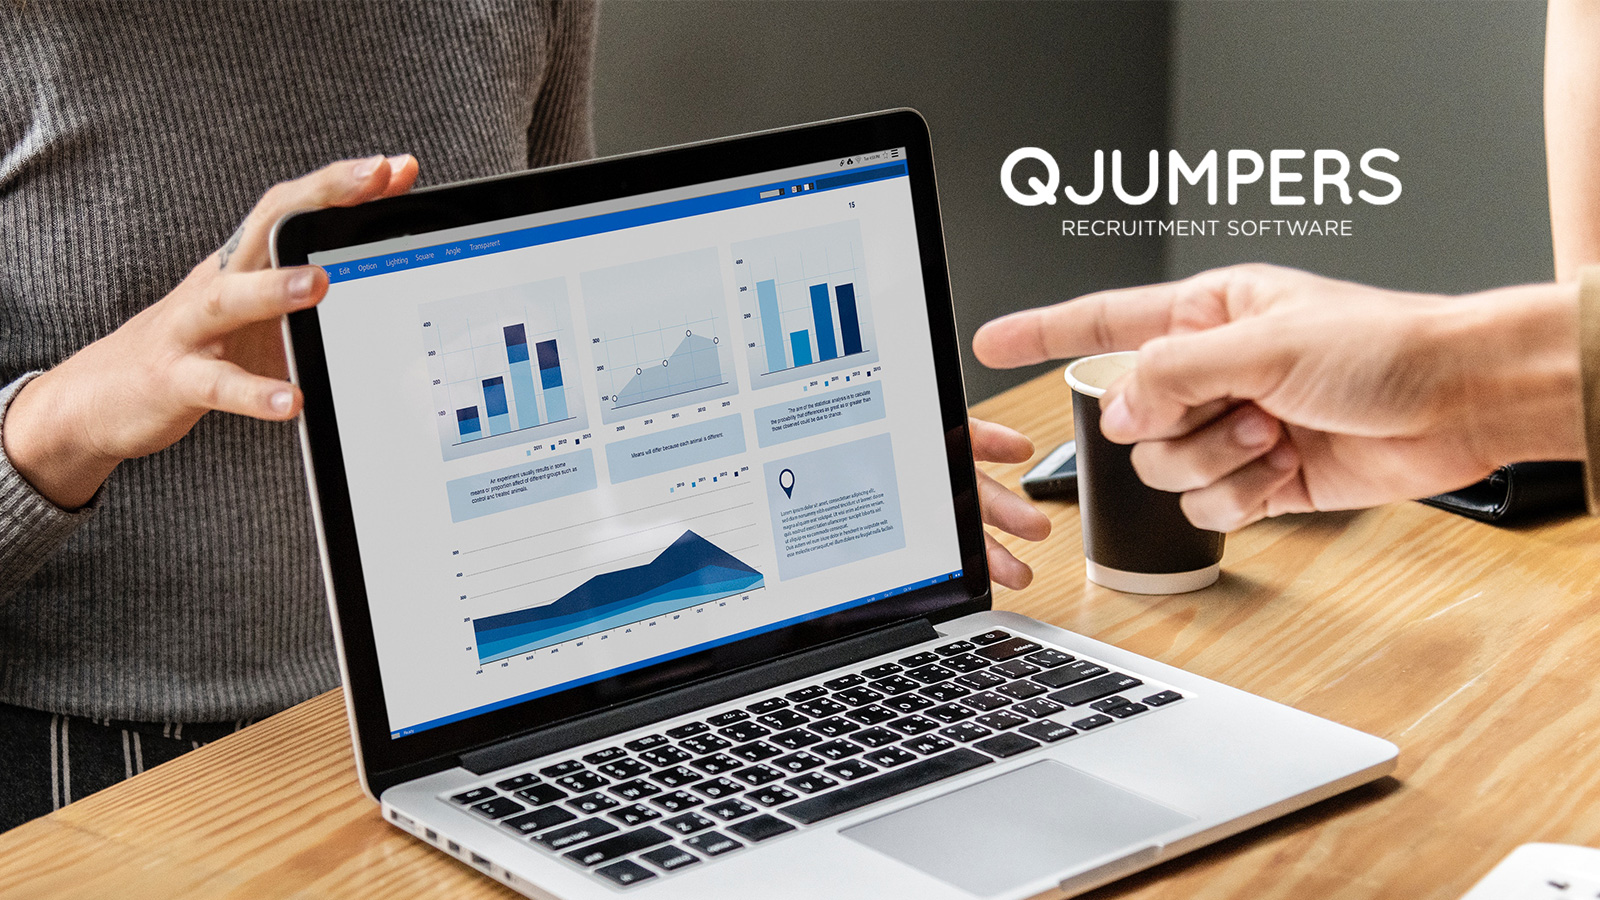 QJumpers Leverages AI to Find Tomorrow's Job Candidates Today